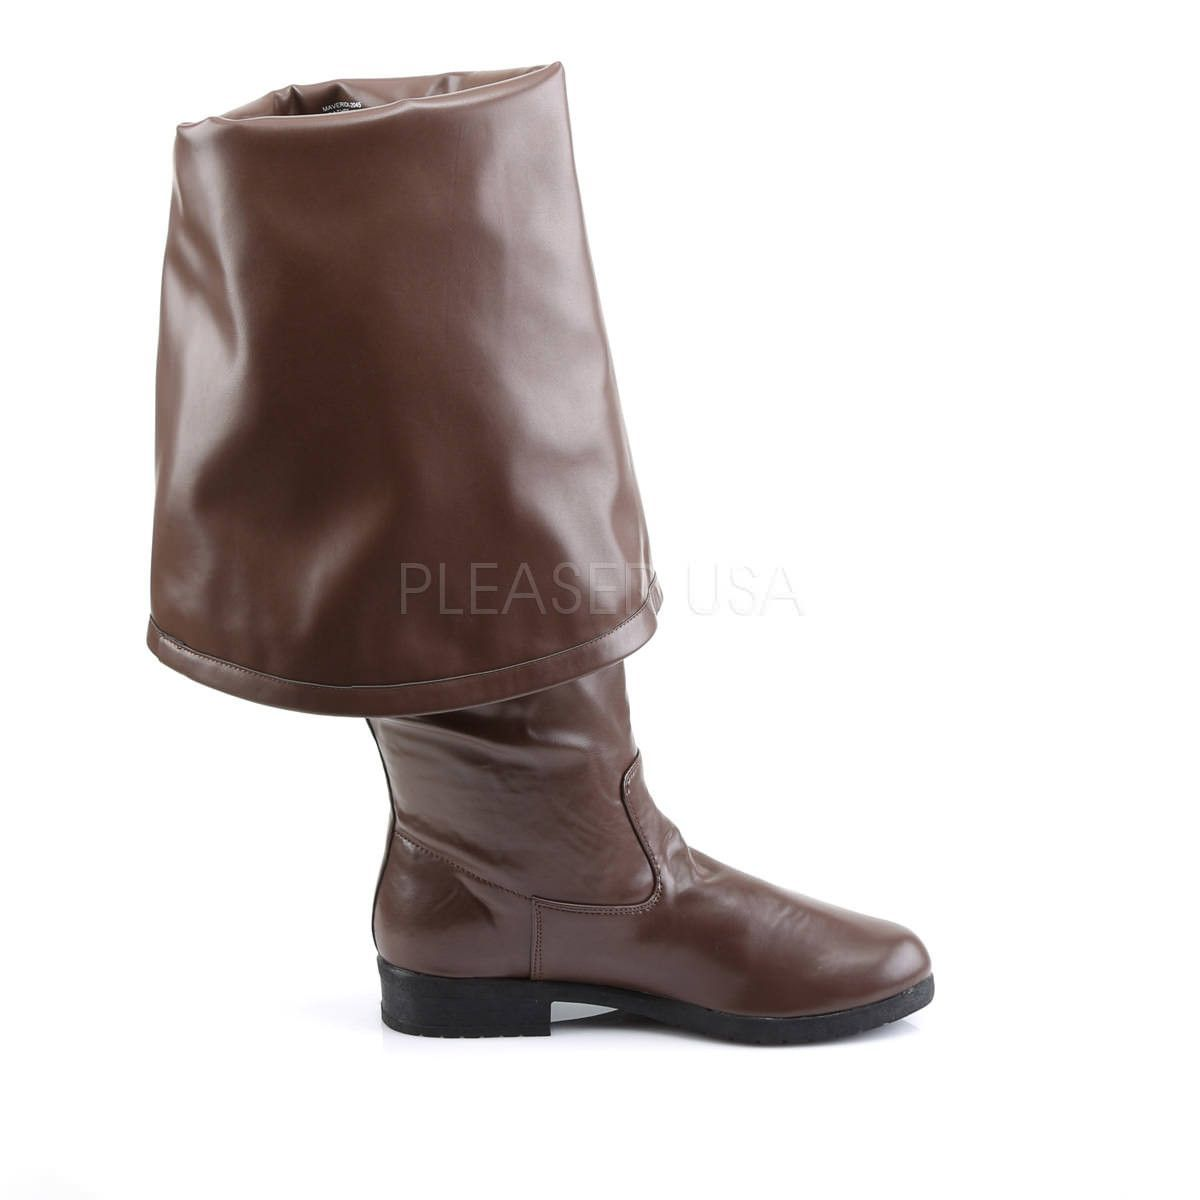 1 1//2 Brown Pirate Boot with 11 Bell Cuff Mens Maverick-2045 8